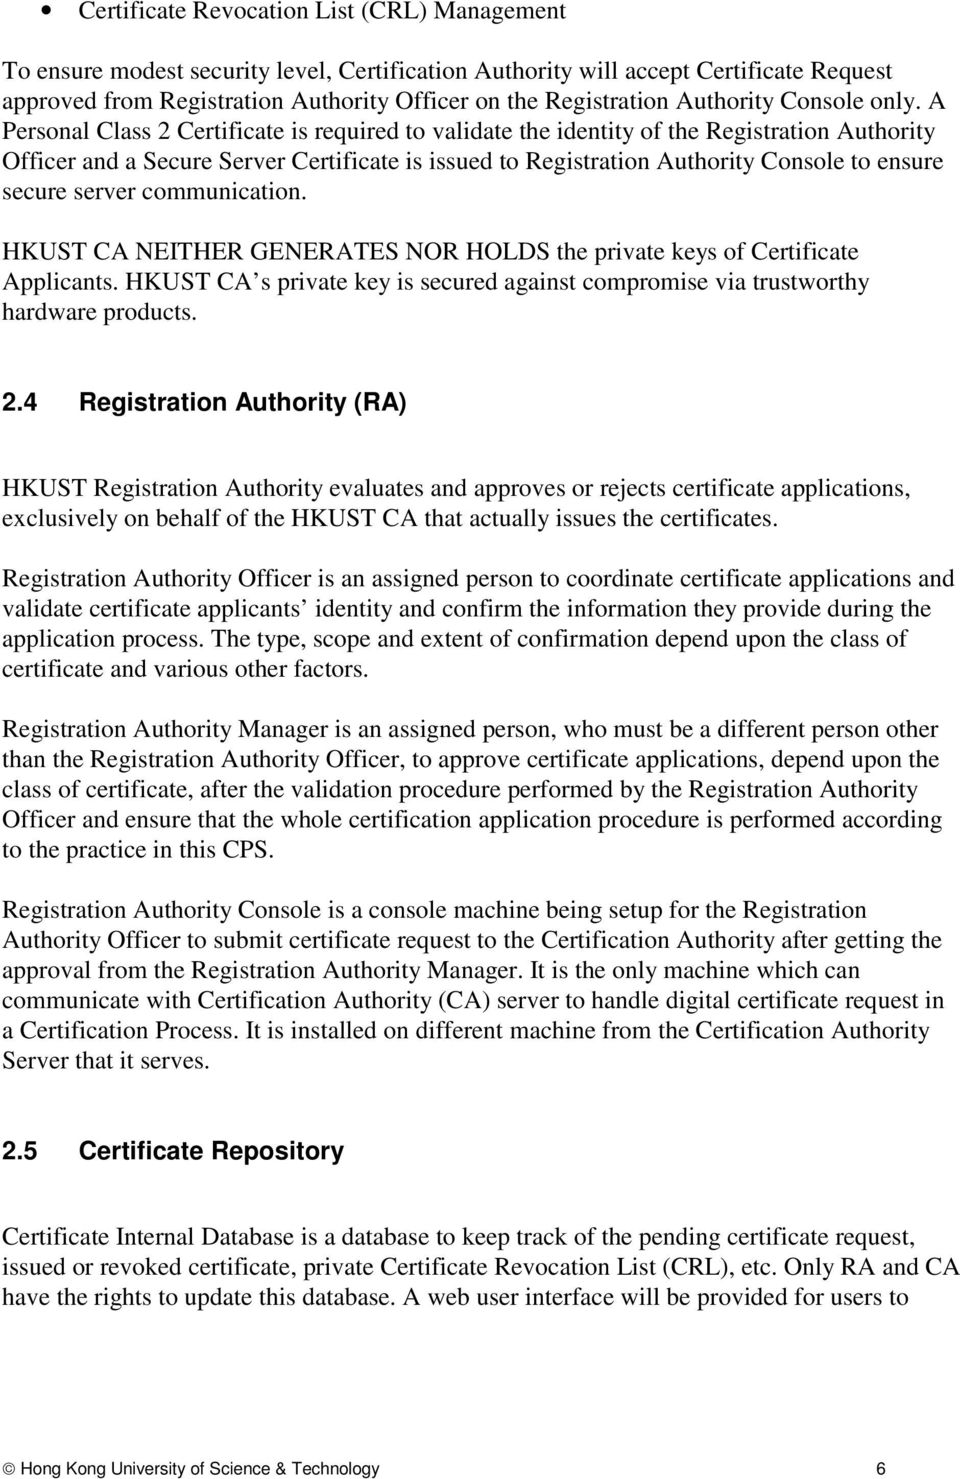 A Personal Class 2 Certificate is required to validate the identity of the Registration Authority Officer and a Secure Server Certificate is issued to Registration Authority Console to ensure secure